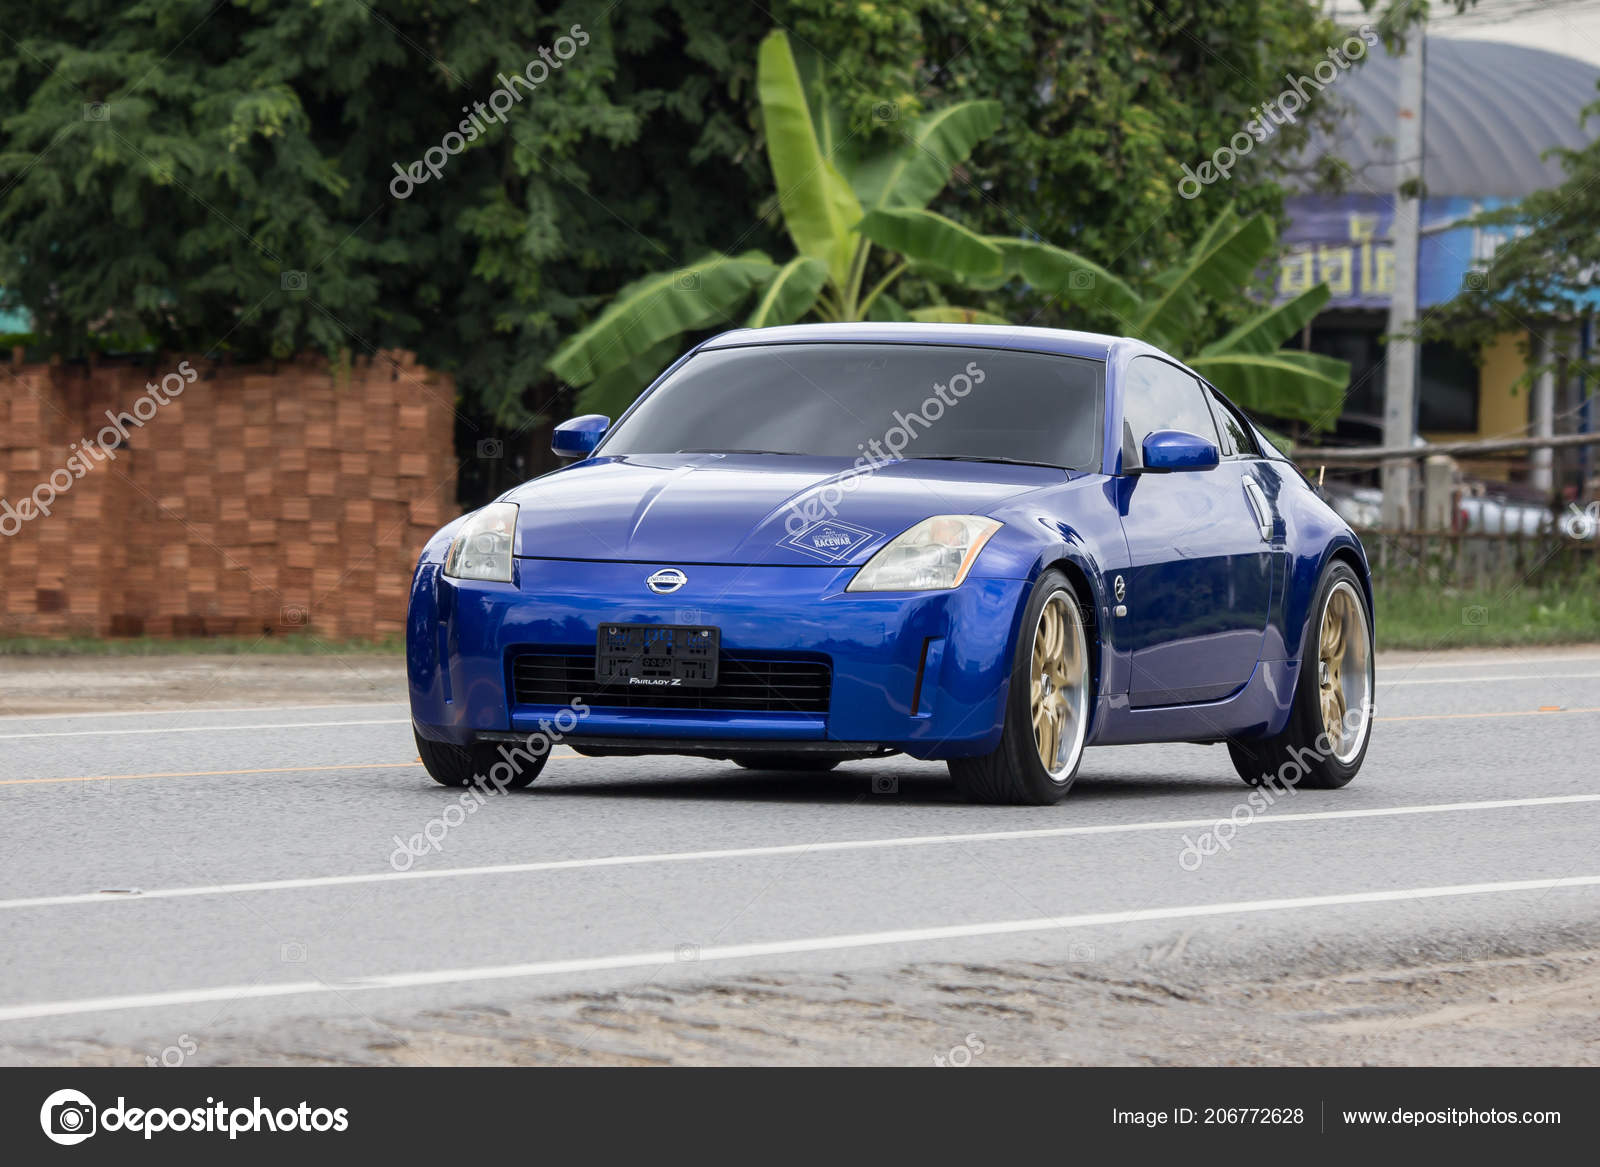 Chiangmai Thailand July 2018 Private Racing Car Nissan 350Z